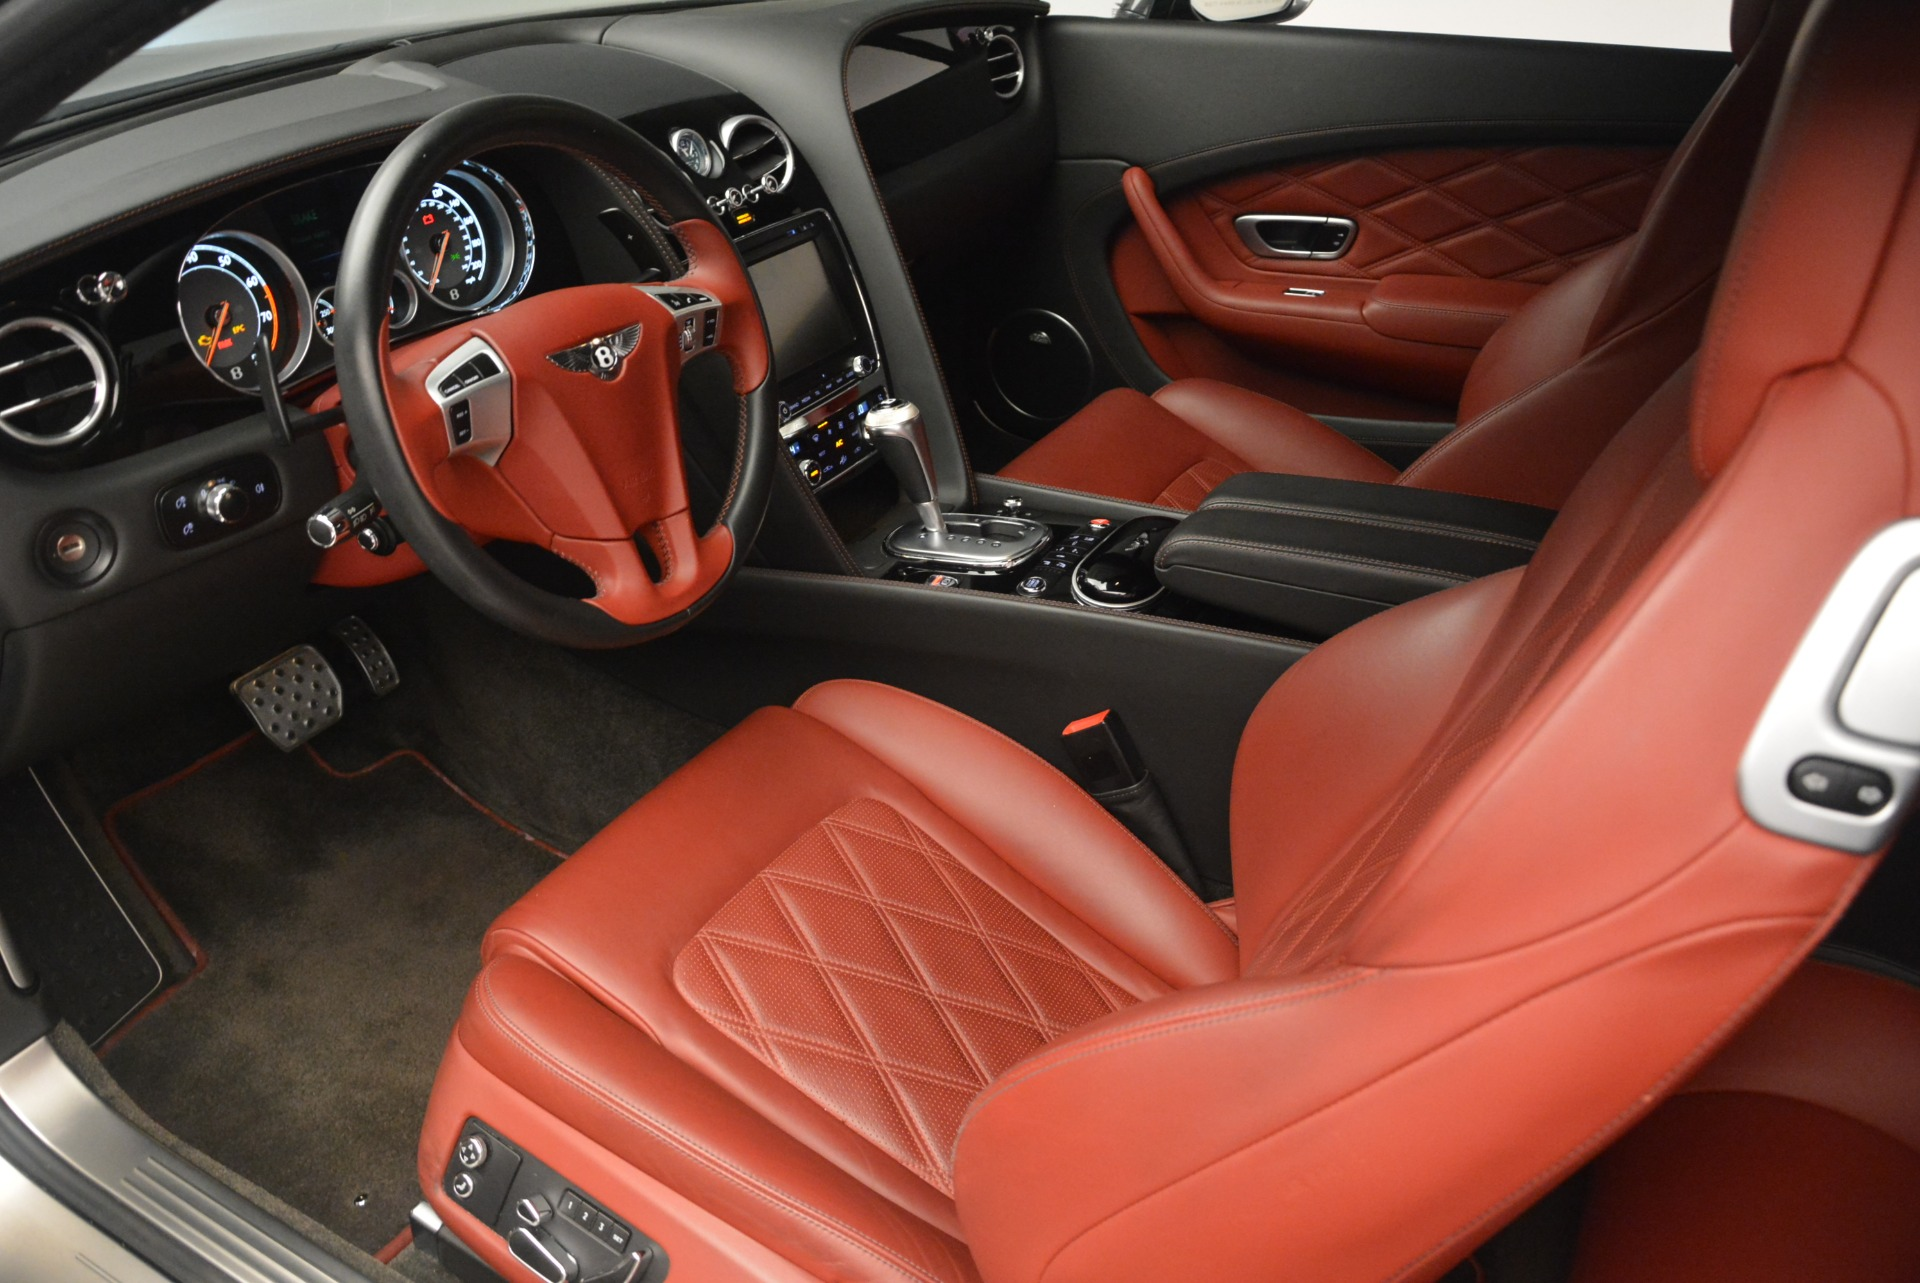 Used 2015 Bentley Continental GT V8 S For Sale In Westport, CT 2207_p18